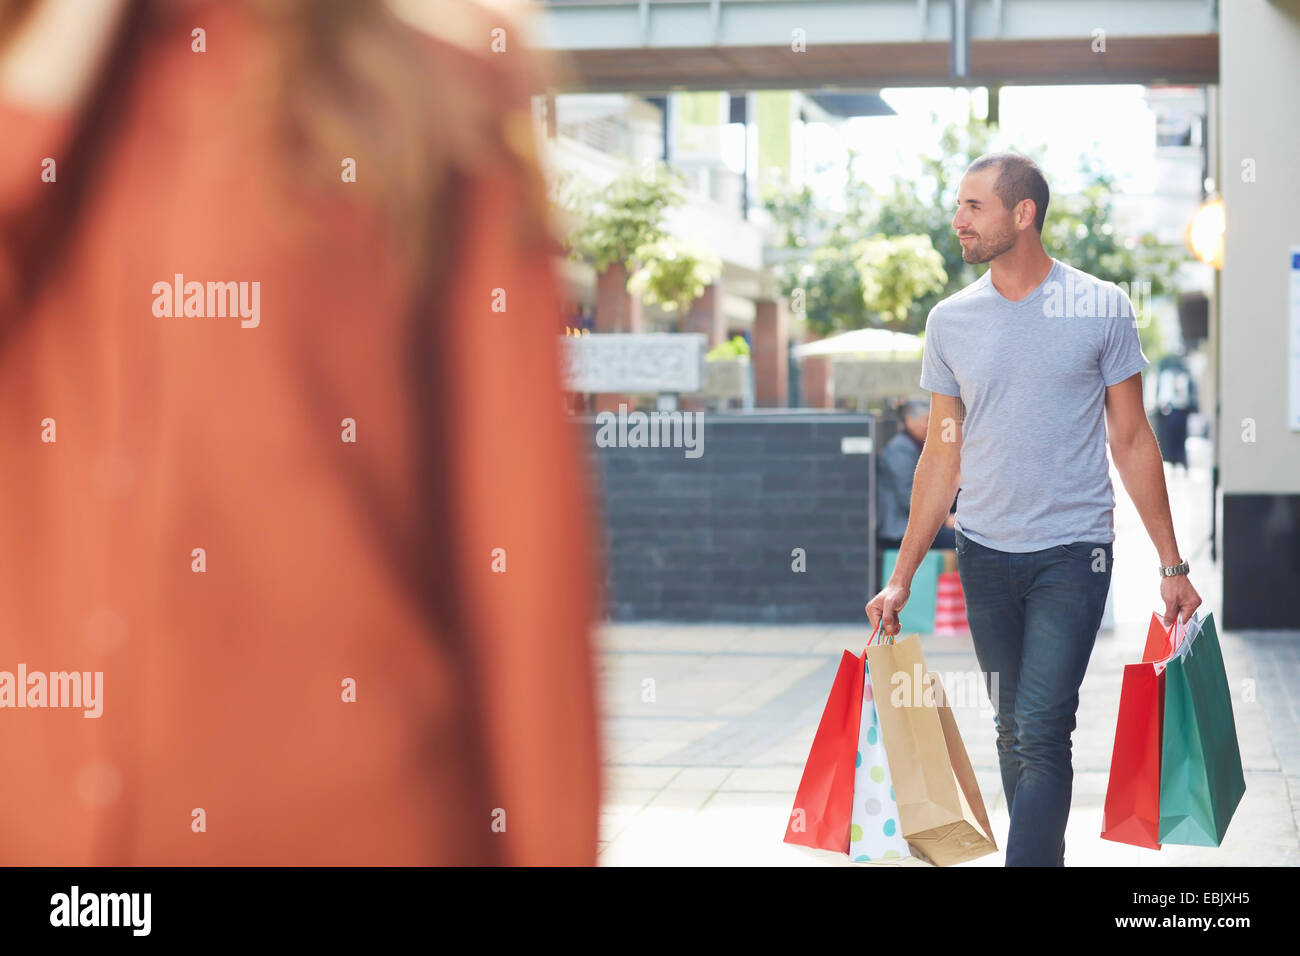 Mid adult man holding shopping bags, walking behind woman - Stock Image